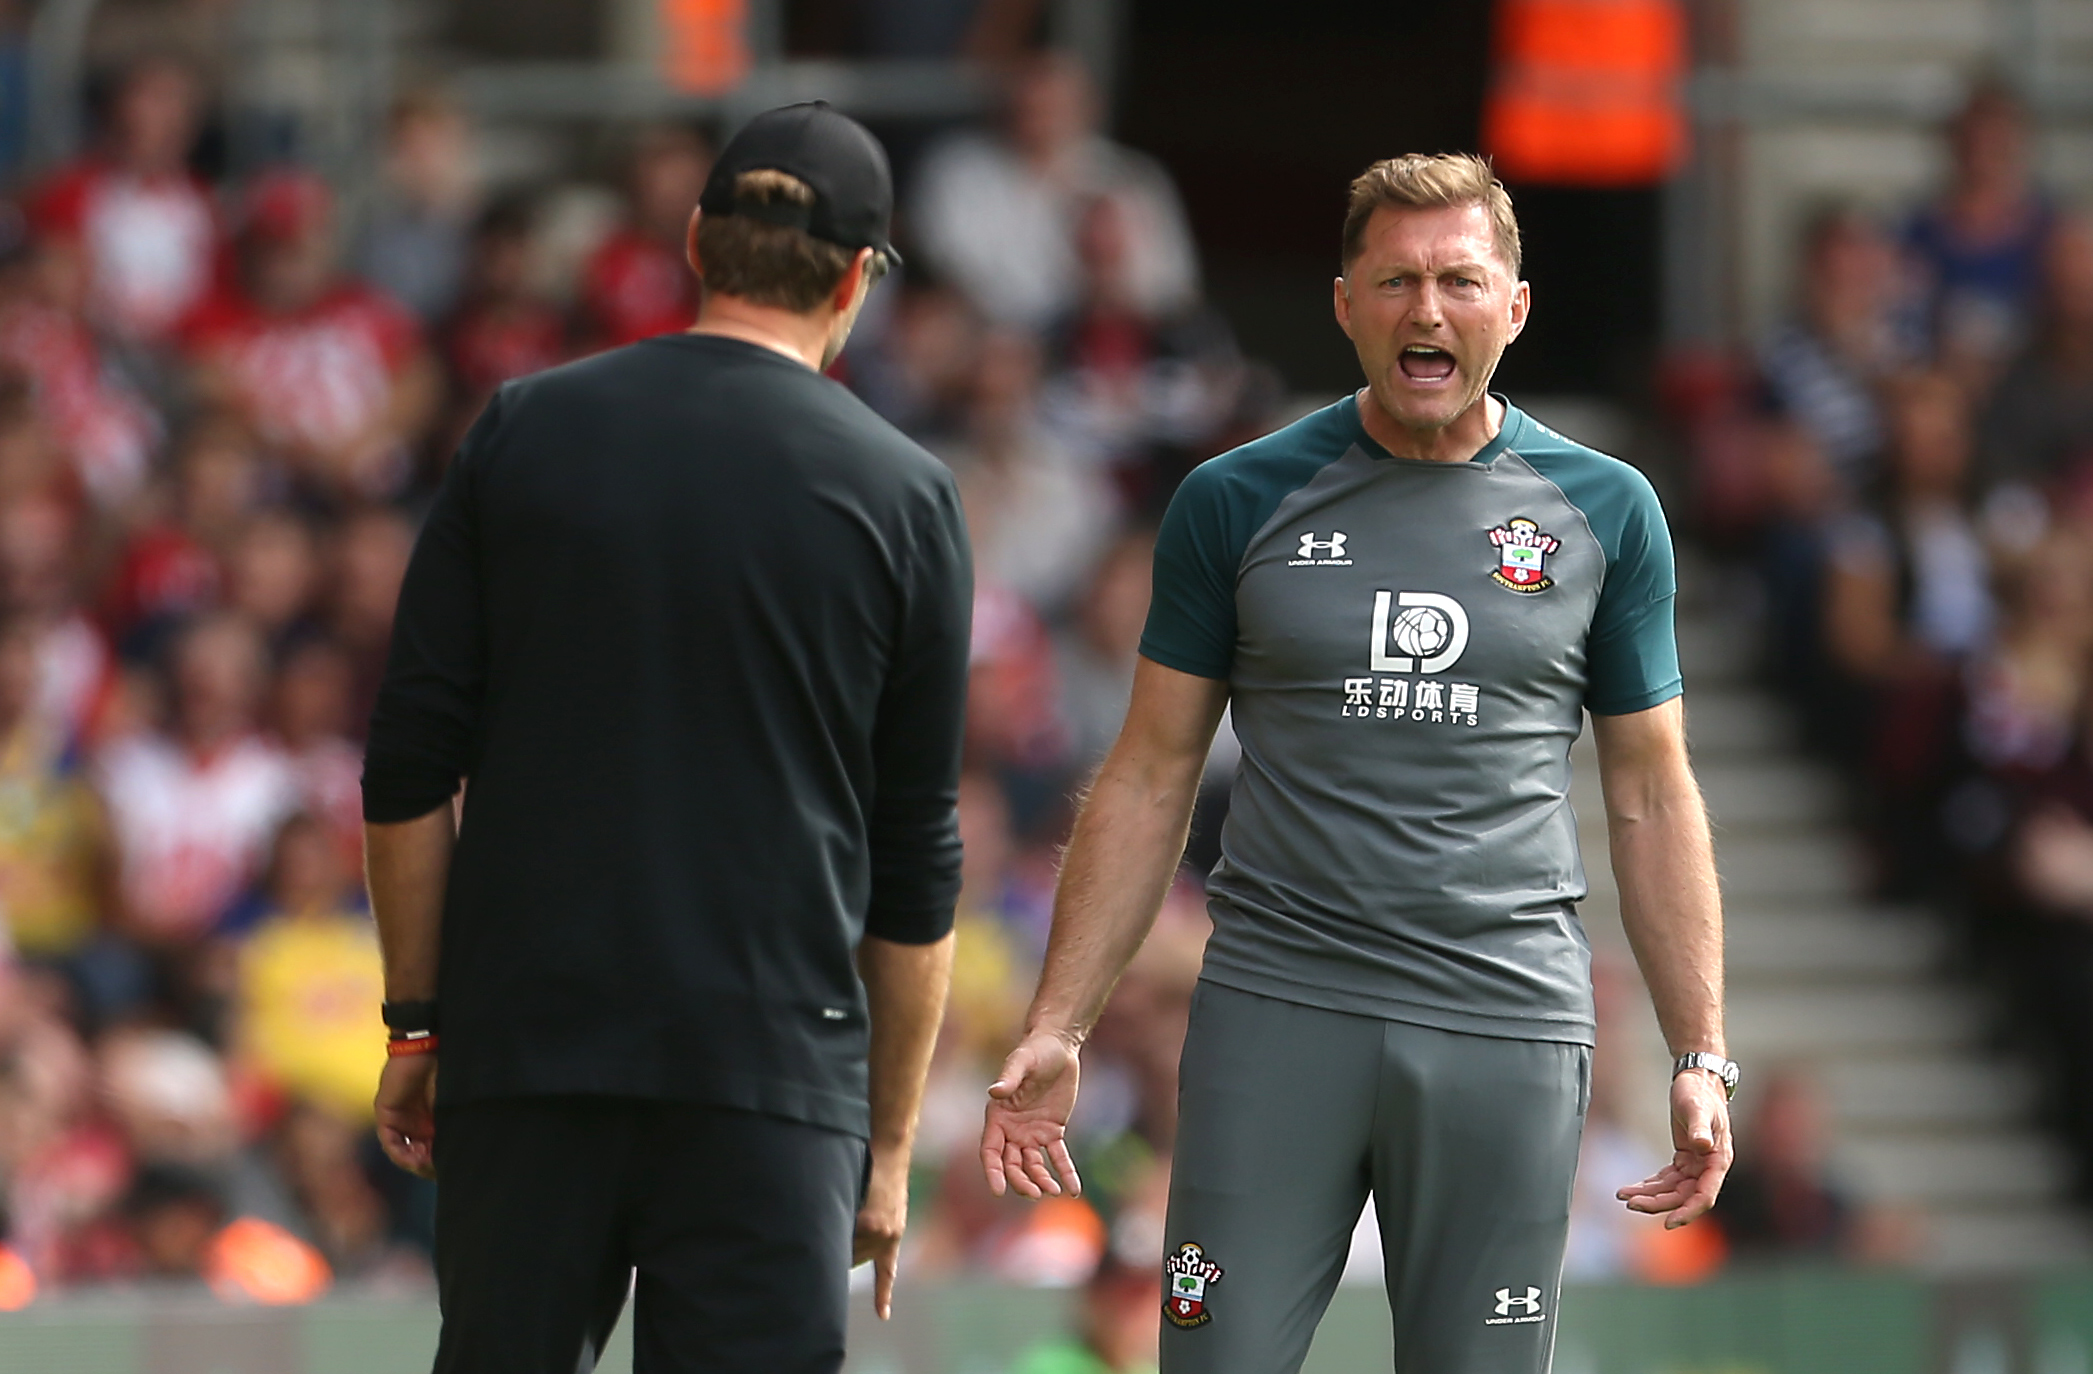 Southampton manager Ralph Hasenhuttl ahead of his side's game against Brighton